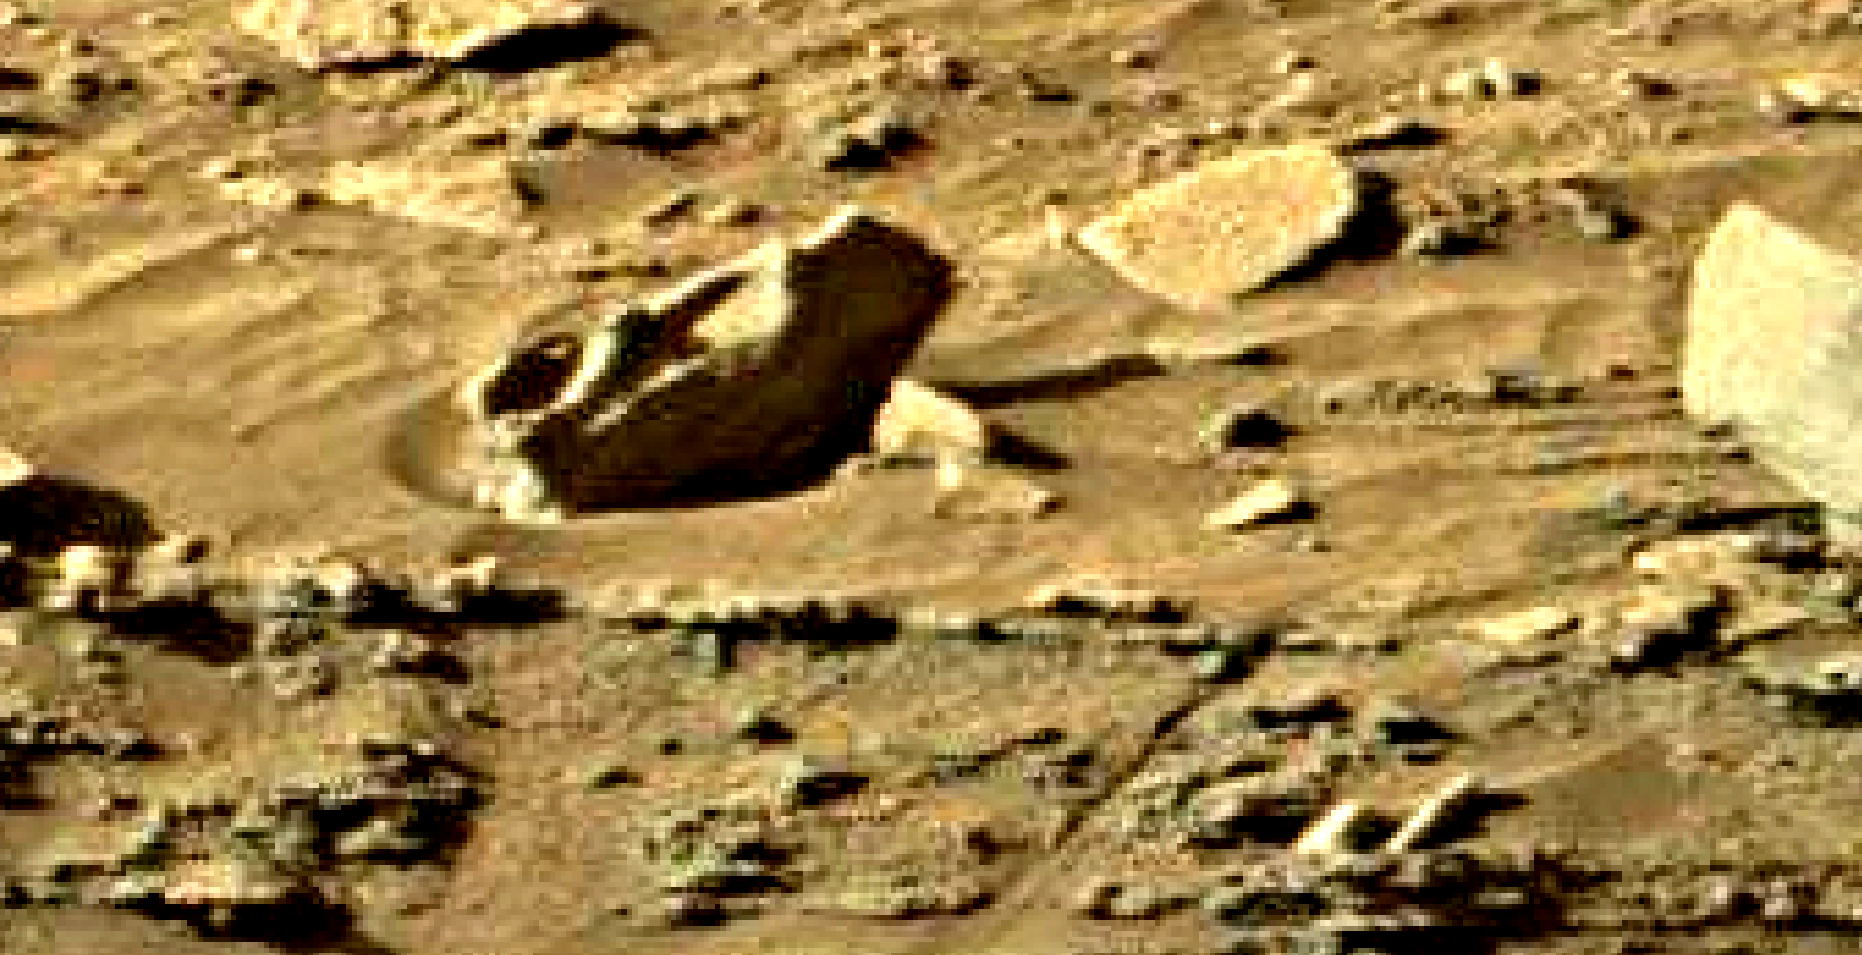 mars sol 1301 anomaly-artifacts 10 was life on mars